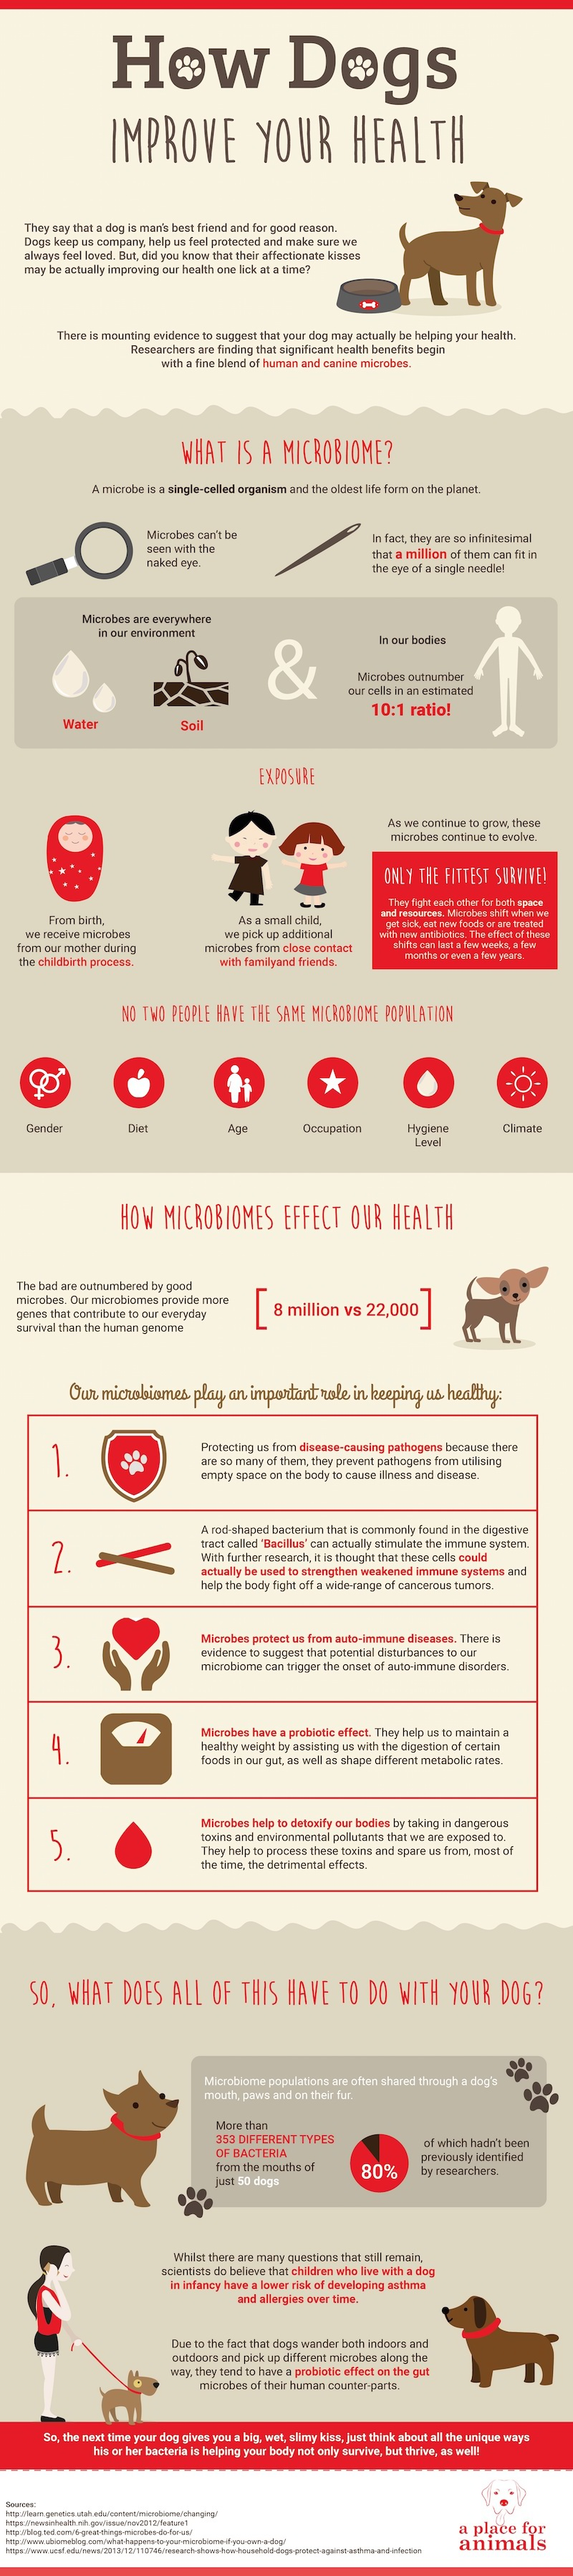 How Dogs Improve Your Health Infographic